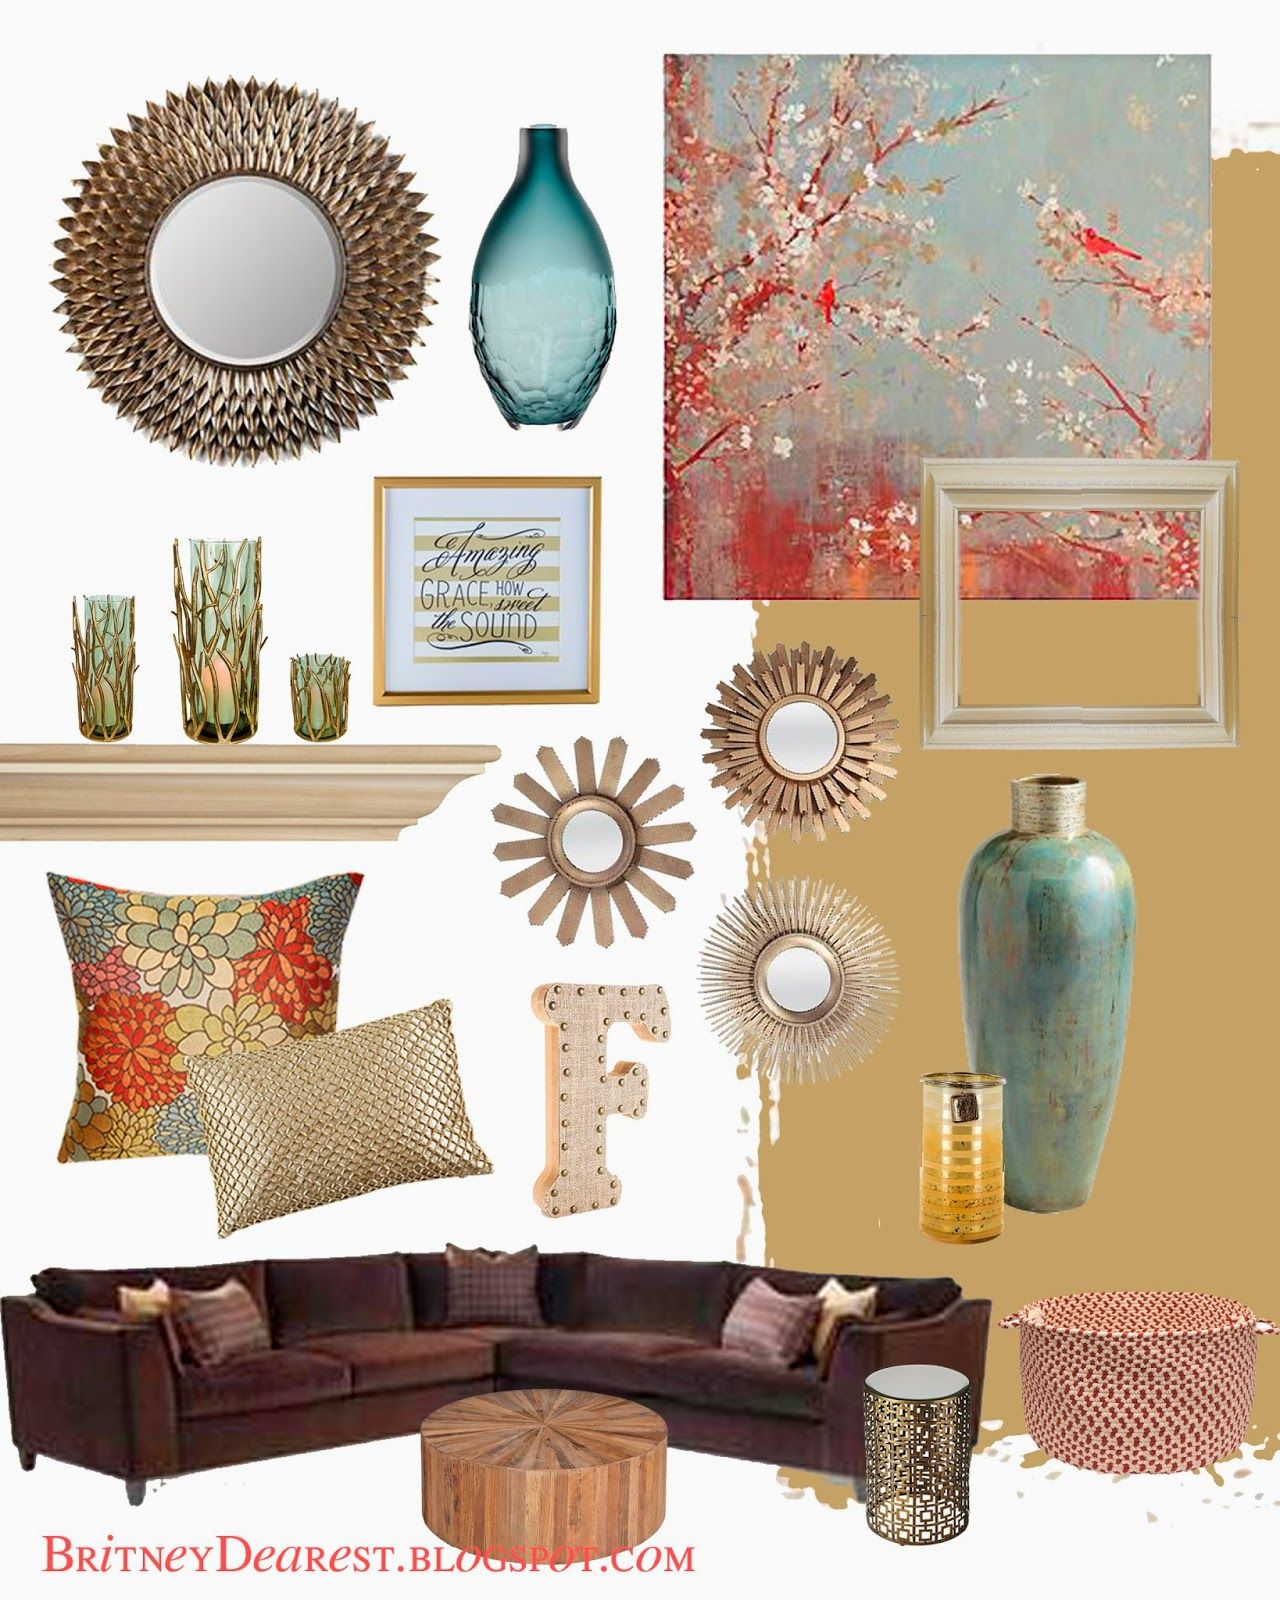 living room style ideas {home interior mood board} home decor, tan